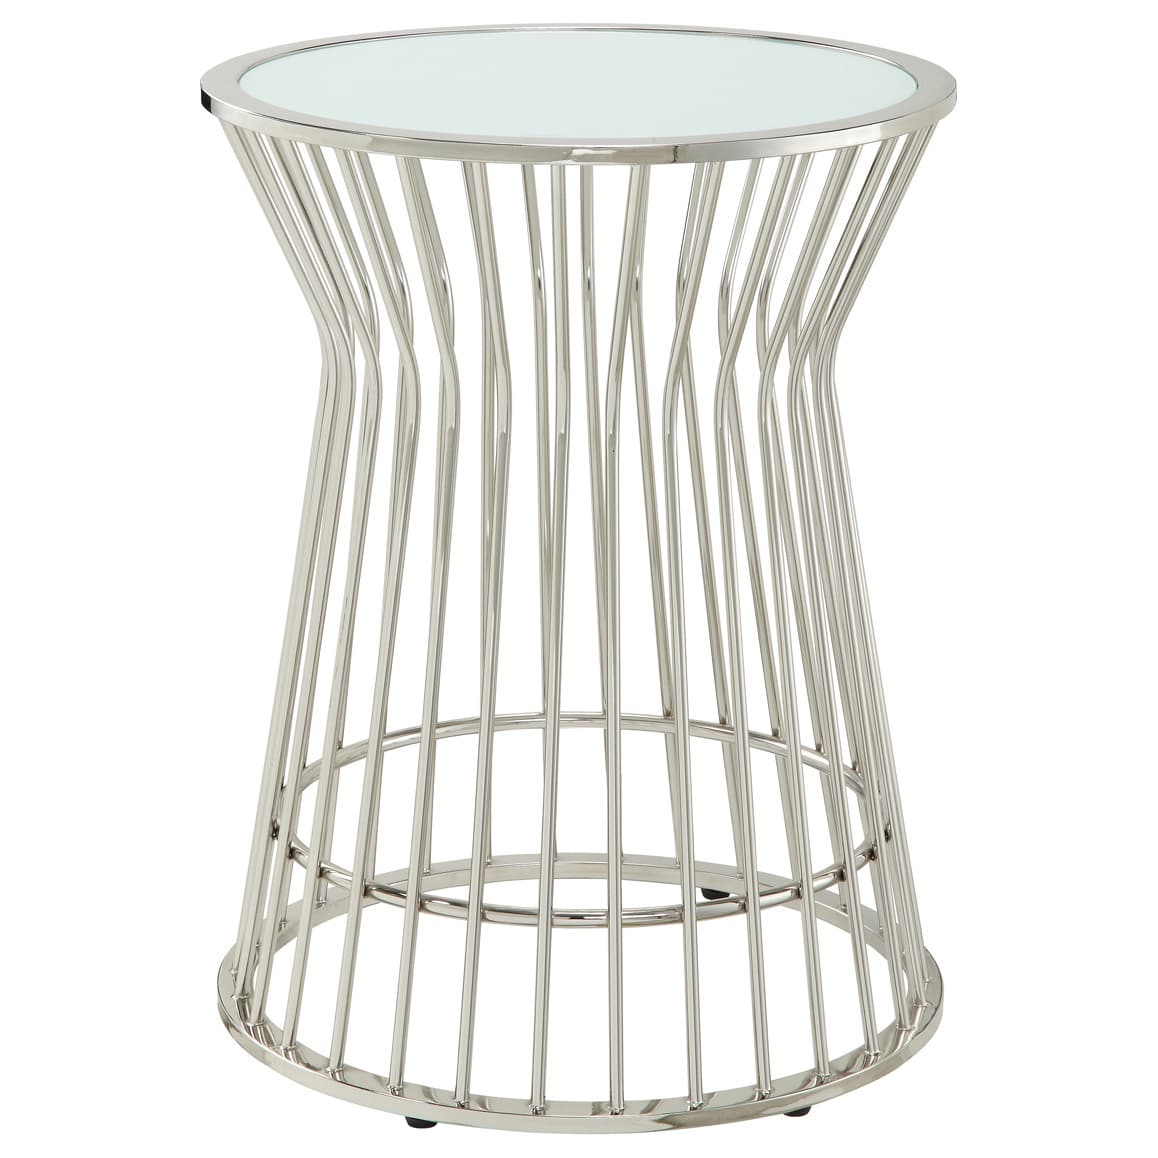 cyril contemporary glam metal frosted glass drum accent table inspire bold white free shipping today ikea box unit navy coffee chairs set vintage mirror side narrow trestle home